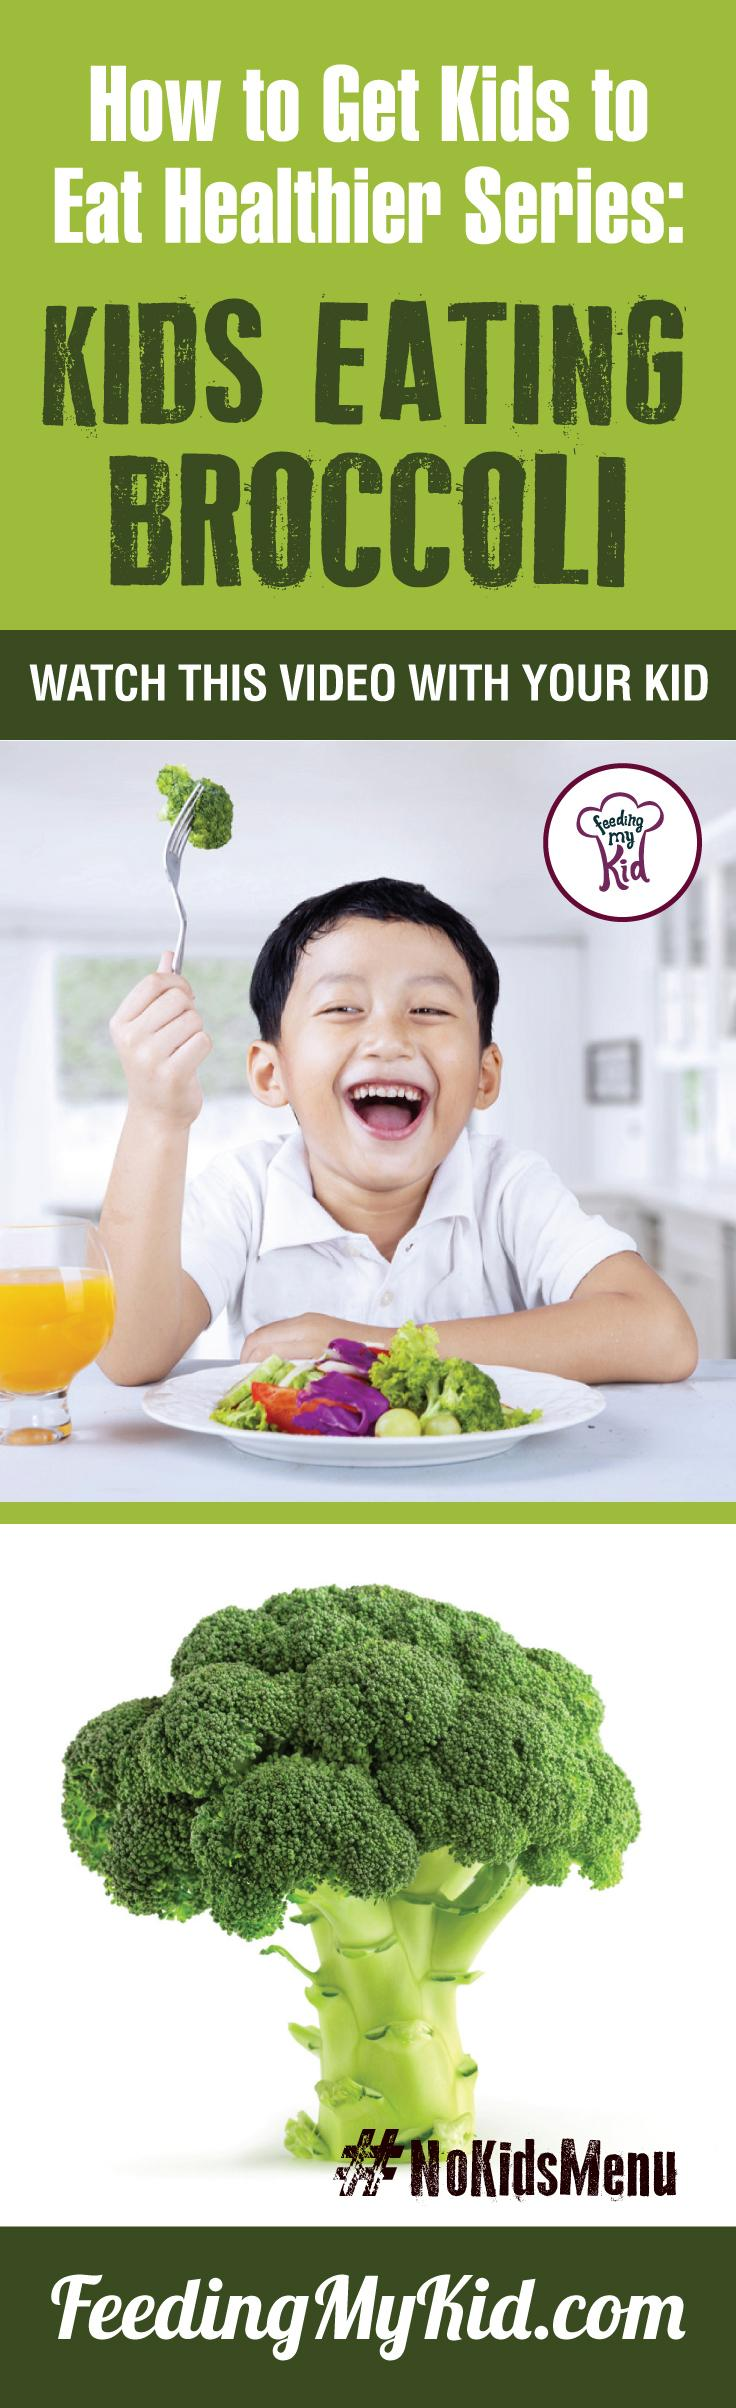 Want your kids to eat broccoli? Teach your kids how to eat more vegetables and fruits. Watch these videos with your kids of children eating veggies and fruits and get your kids to eat veggies and fruits. Find out how it works here. Feeding My Kid is a filled with all the information you need about how to raise your kids, from healthy tips to nutritious recipes. #FeedingMyKid #pickyeating #getkidstoeat #broccoli #nokidsmenu